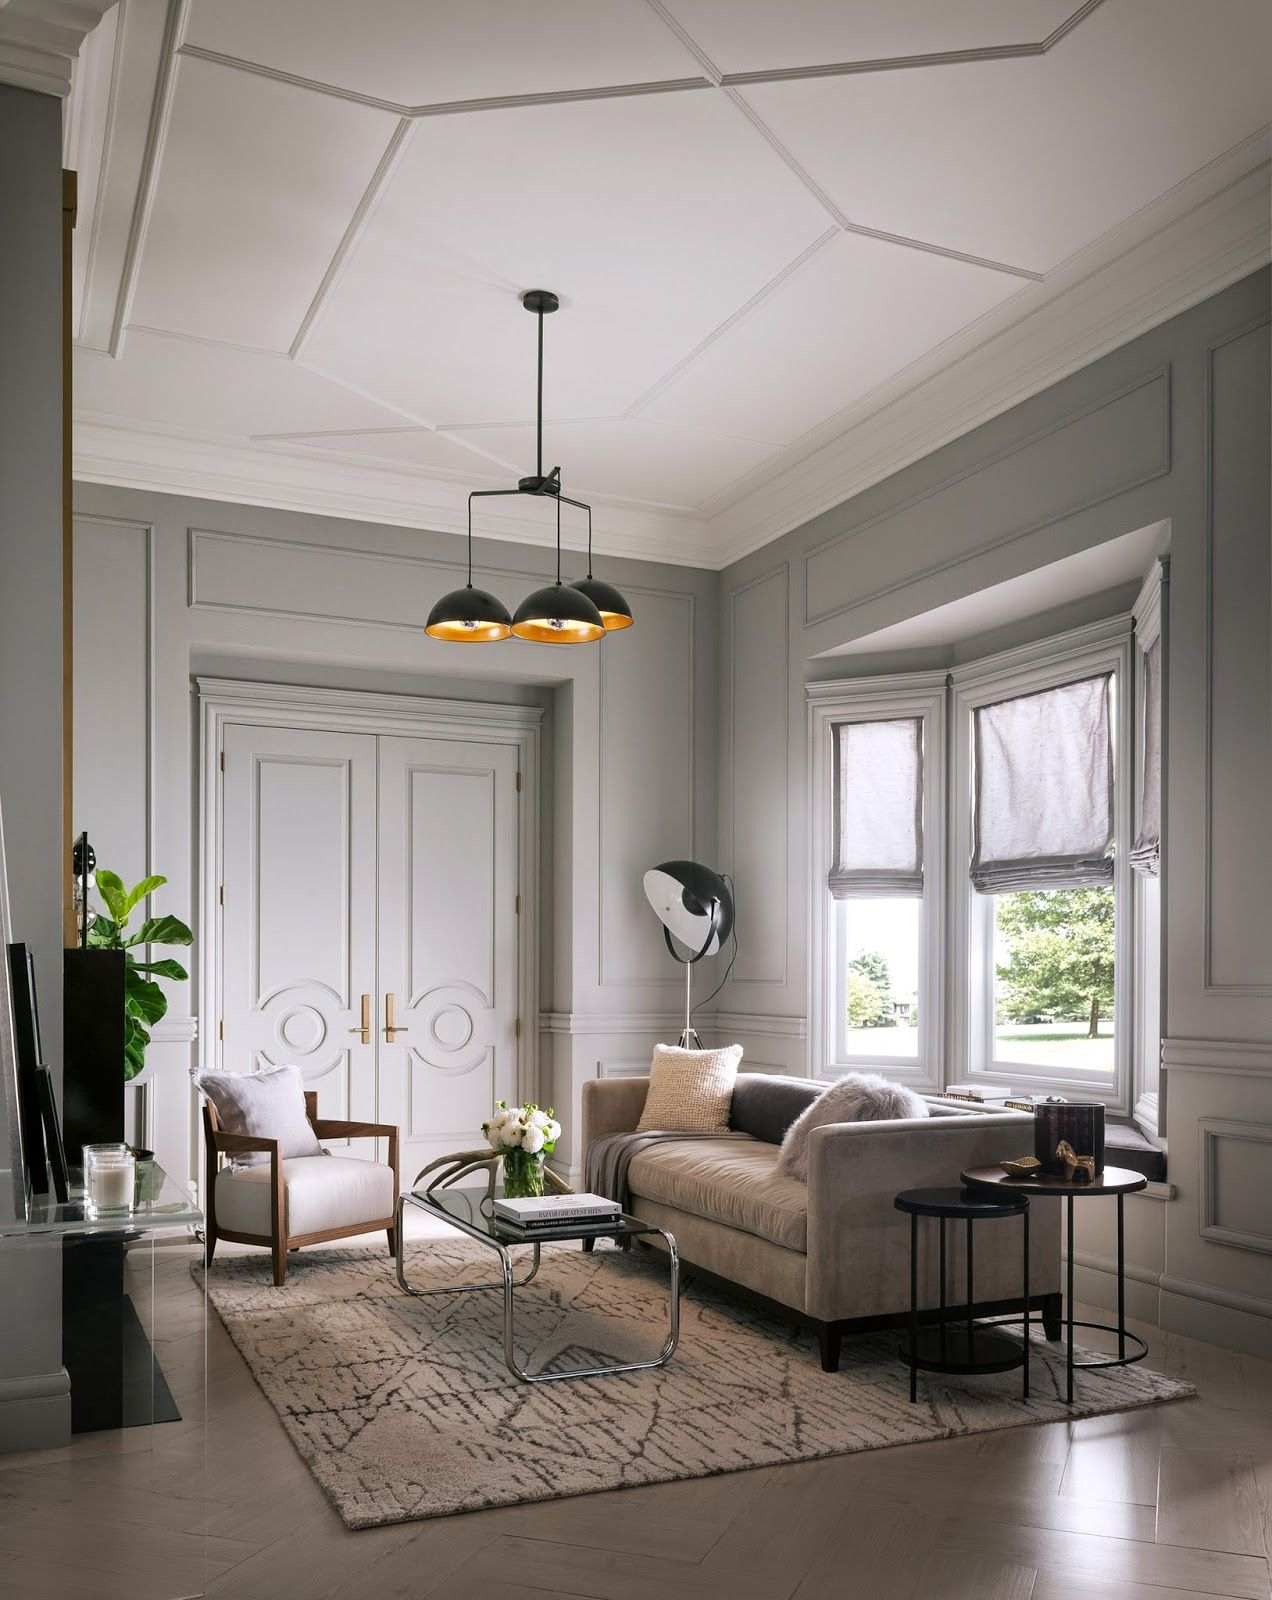 Image Result For Contemporary Bedroom Door Designs: Contemporary Moulding And Trim